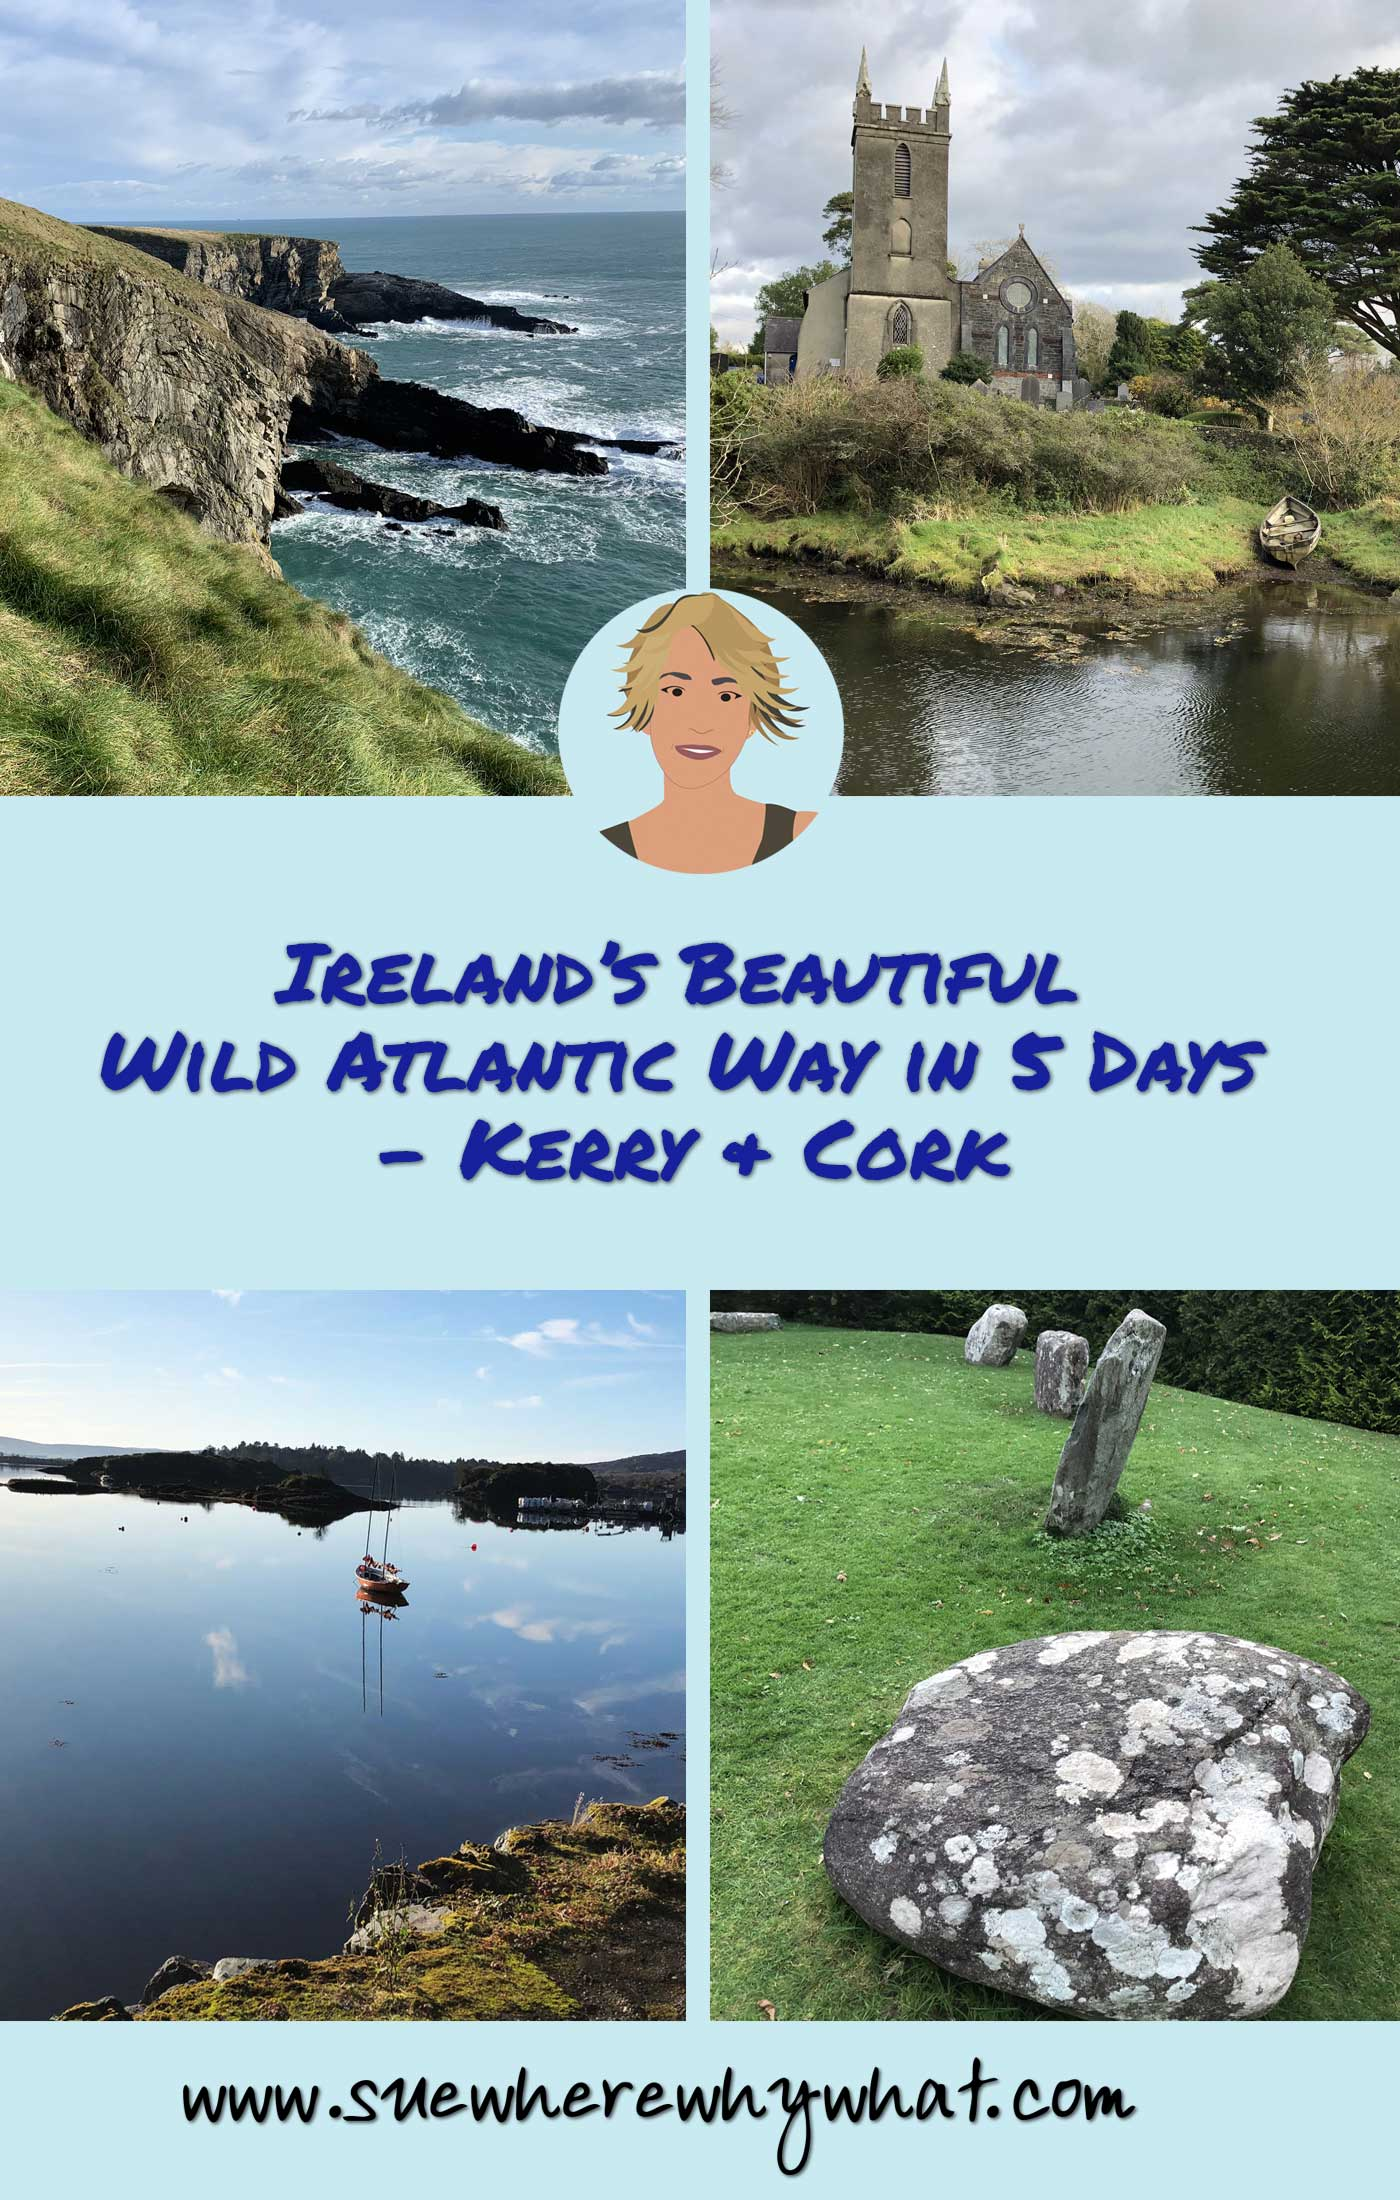 Ireland's Beautiful Wild Atlantic Way in 5 Days – Kerry & Cork